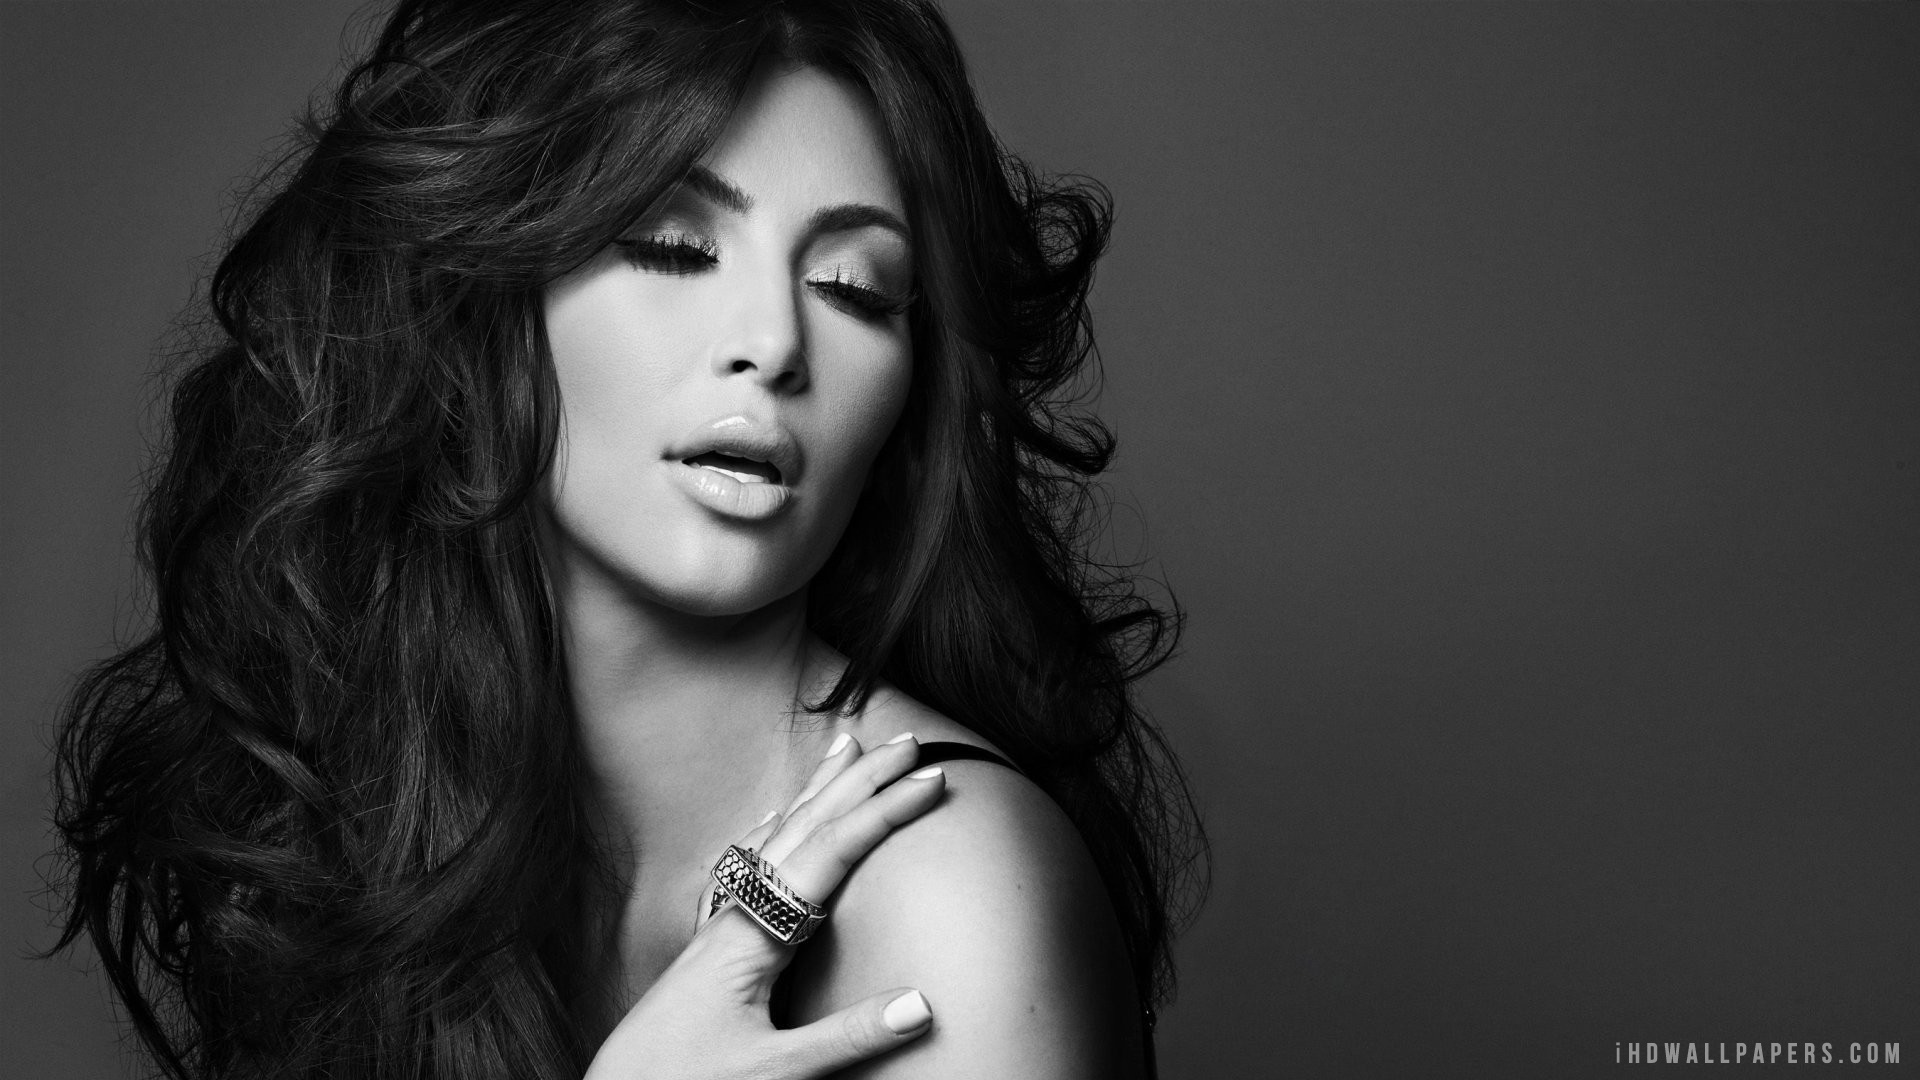 Kim Kardashian HD Wallpaper   iHD Wallpapers 1920x1080